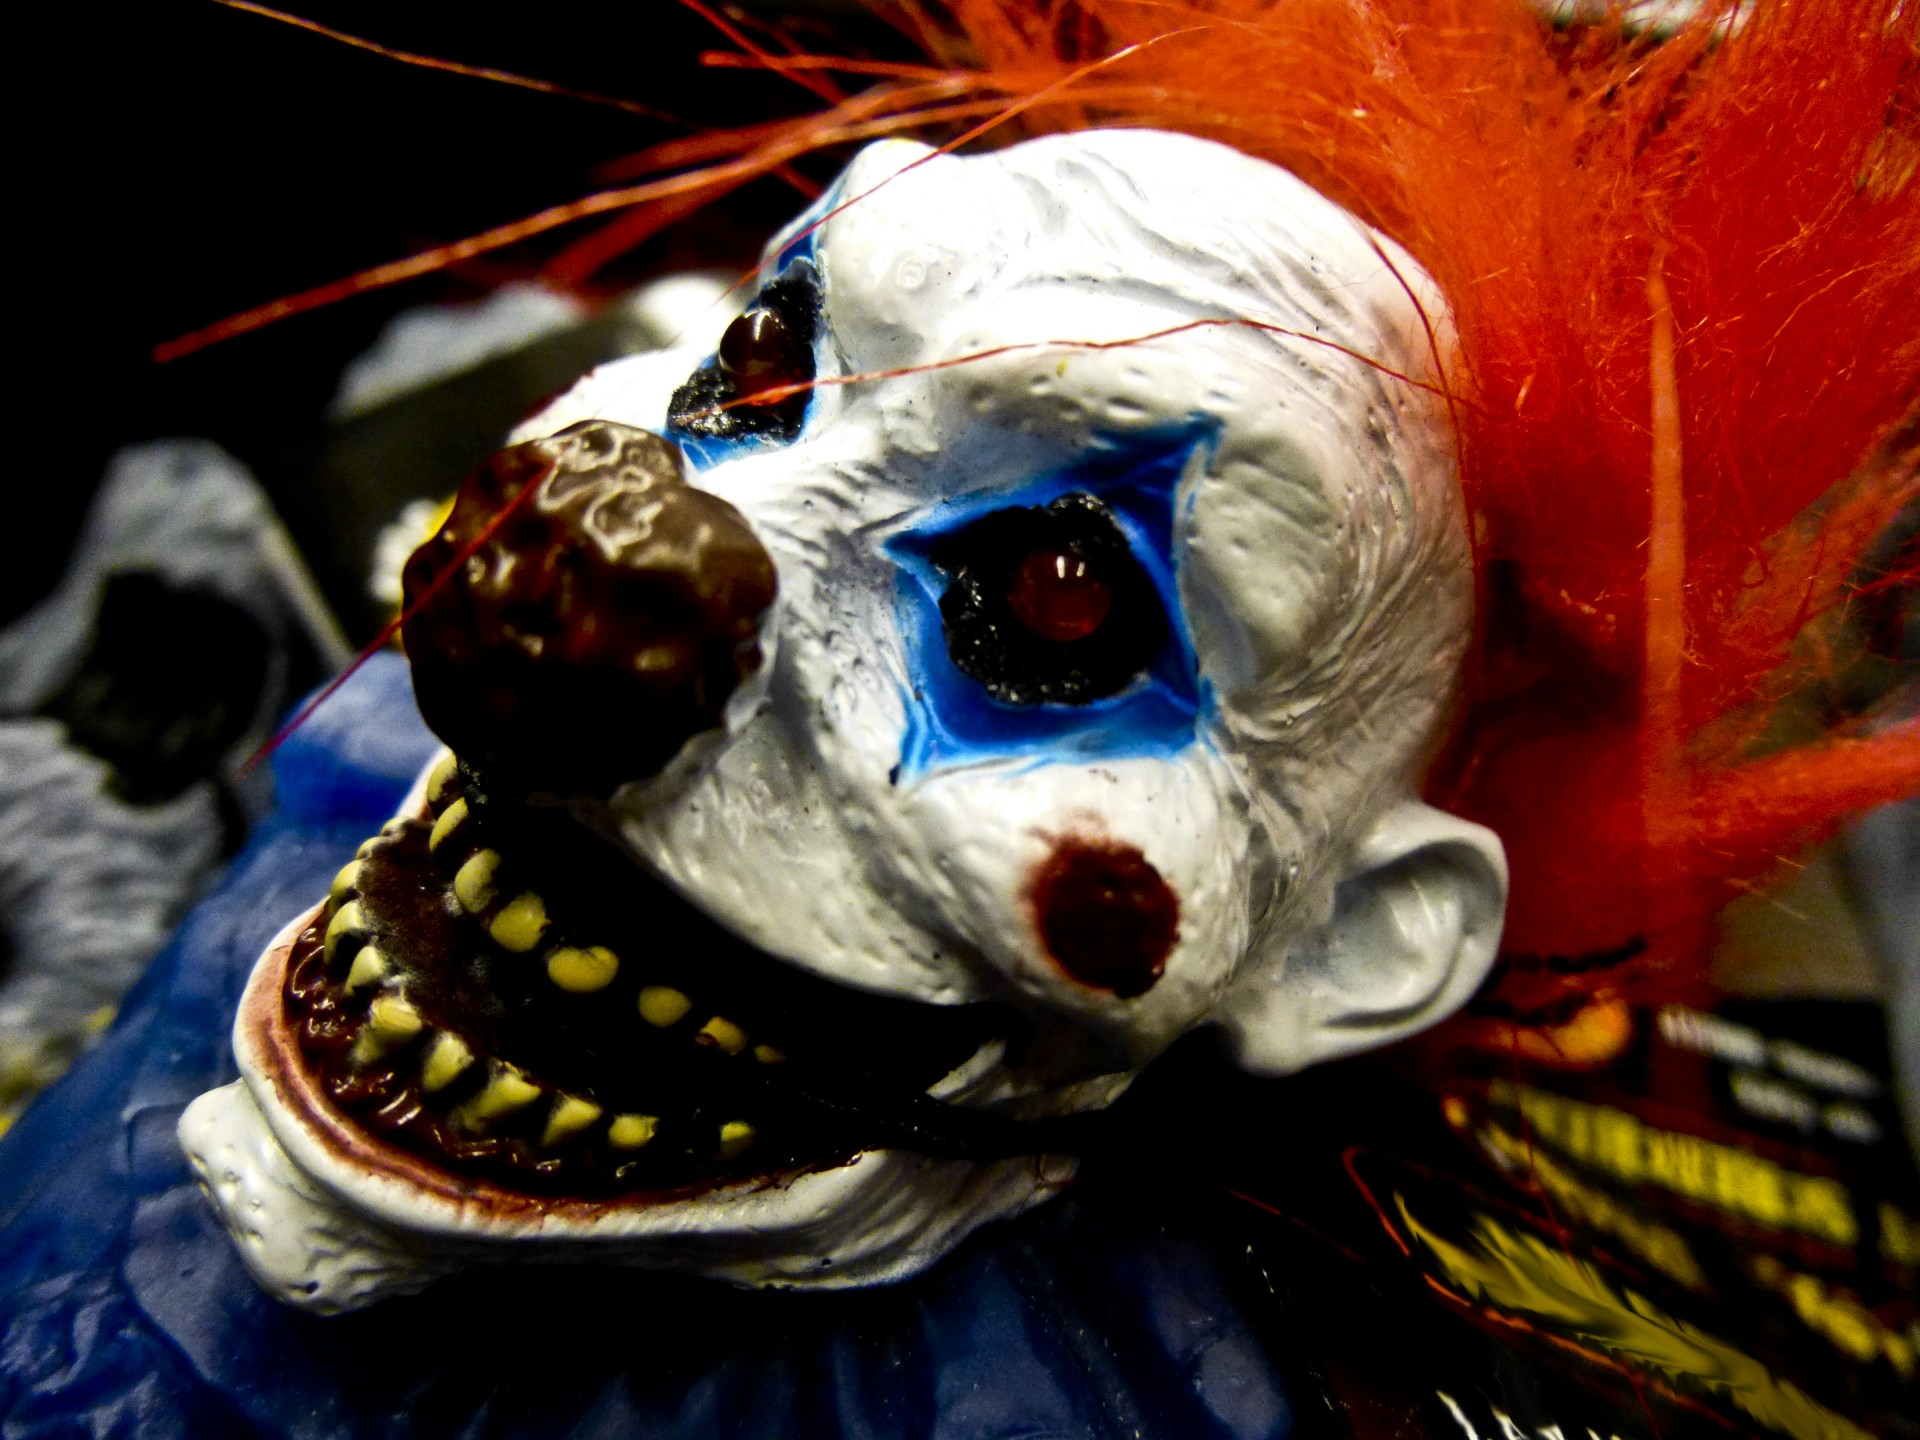 Some retailers in the US have begun pulling 'scary' clown masks from the shelves. (Image: publicdomainpictures.com)